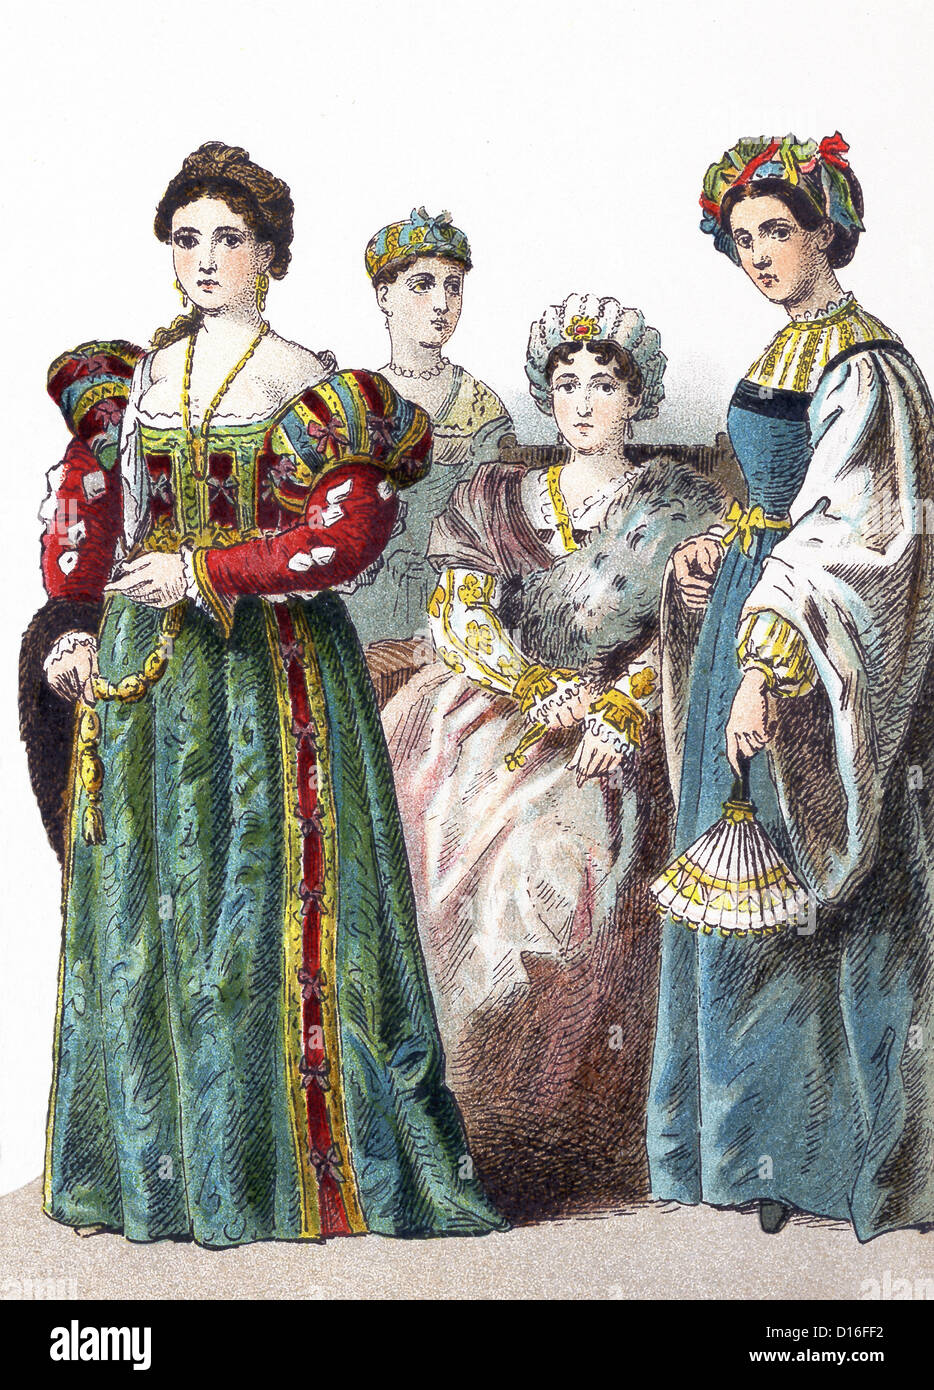 This illustration, which dates to 1882, shows four Italian women between 1500 and 1550. - Stock Image